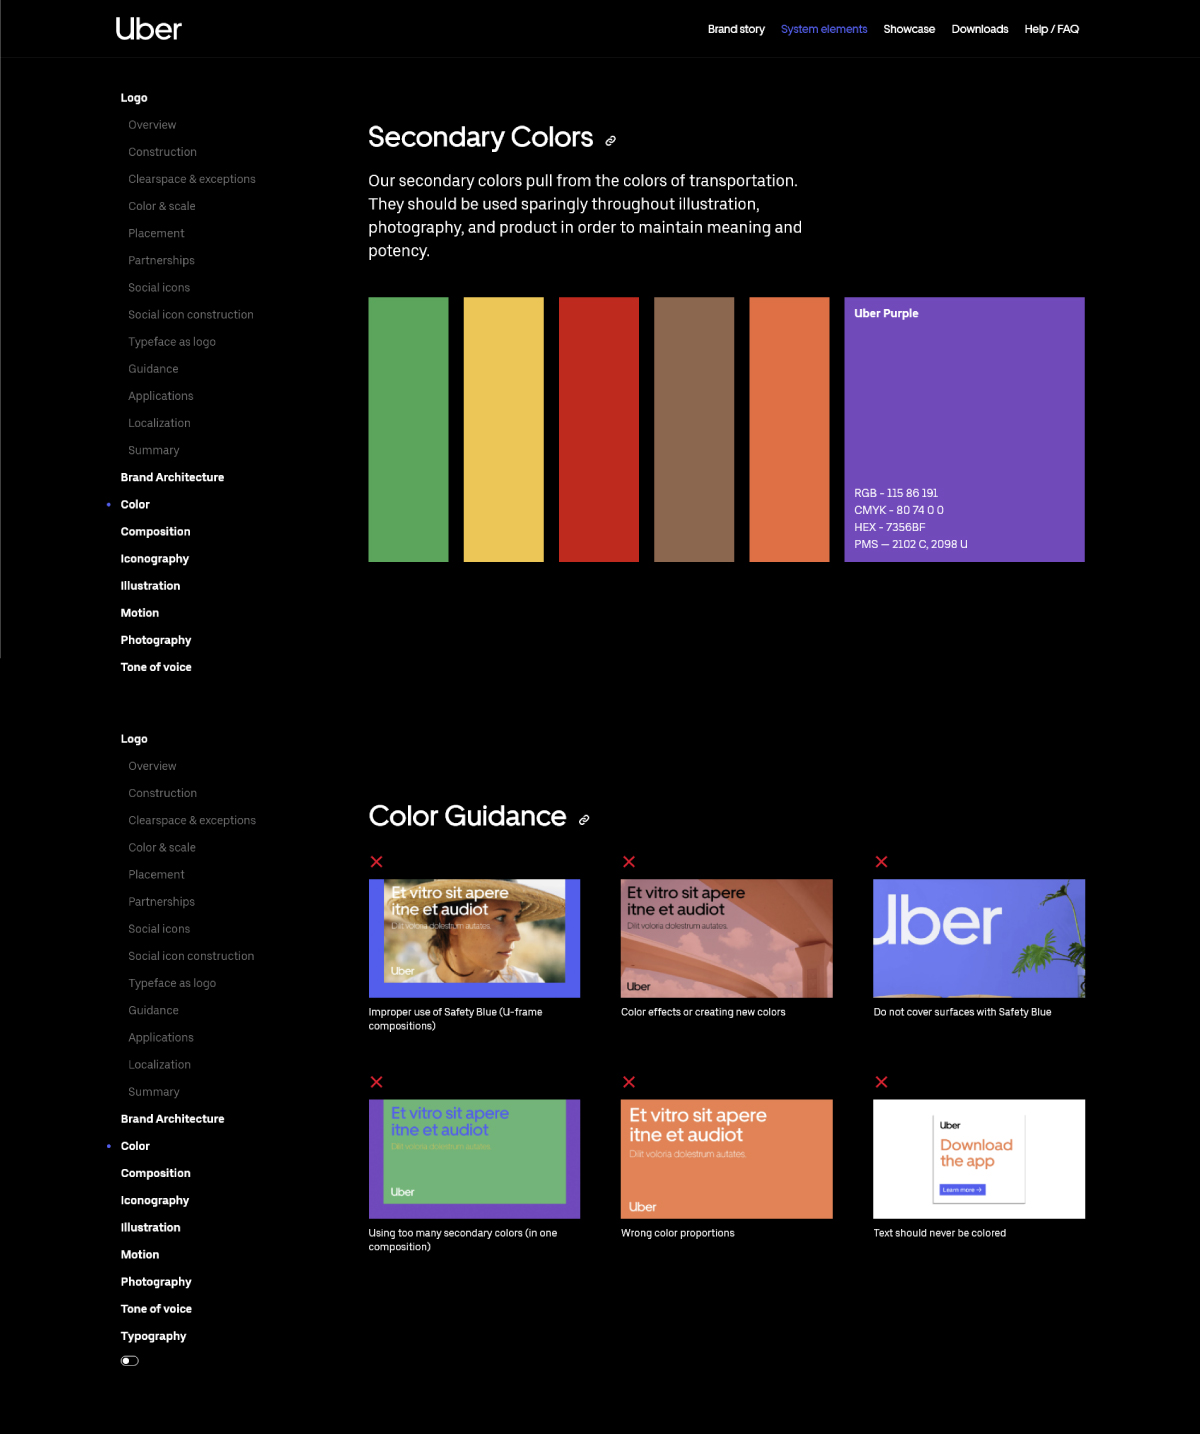 A screenshot of Uber's brand guidelines.